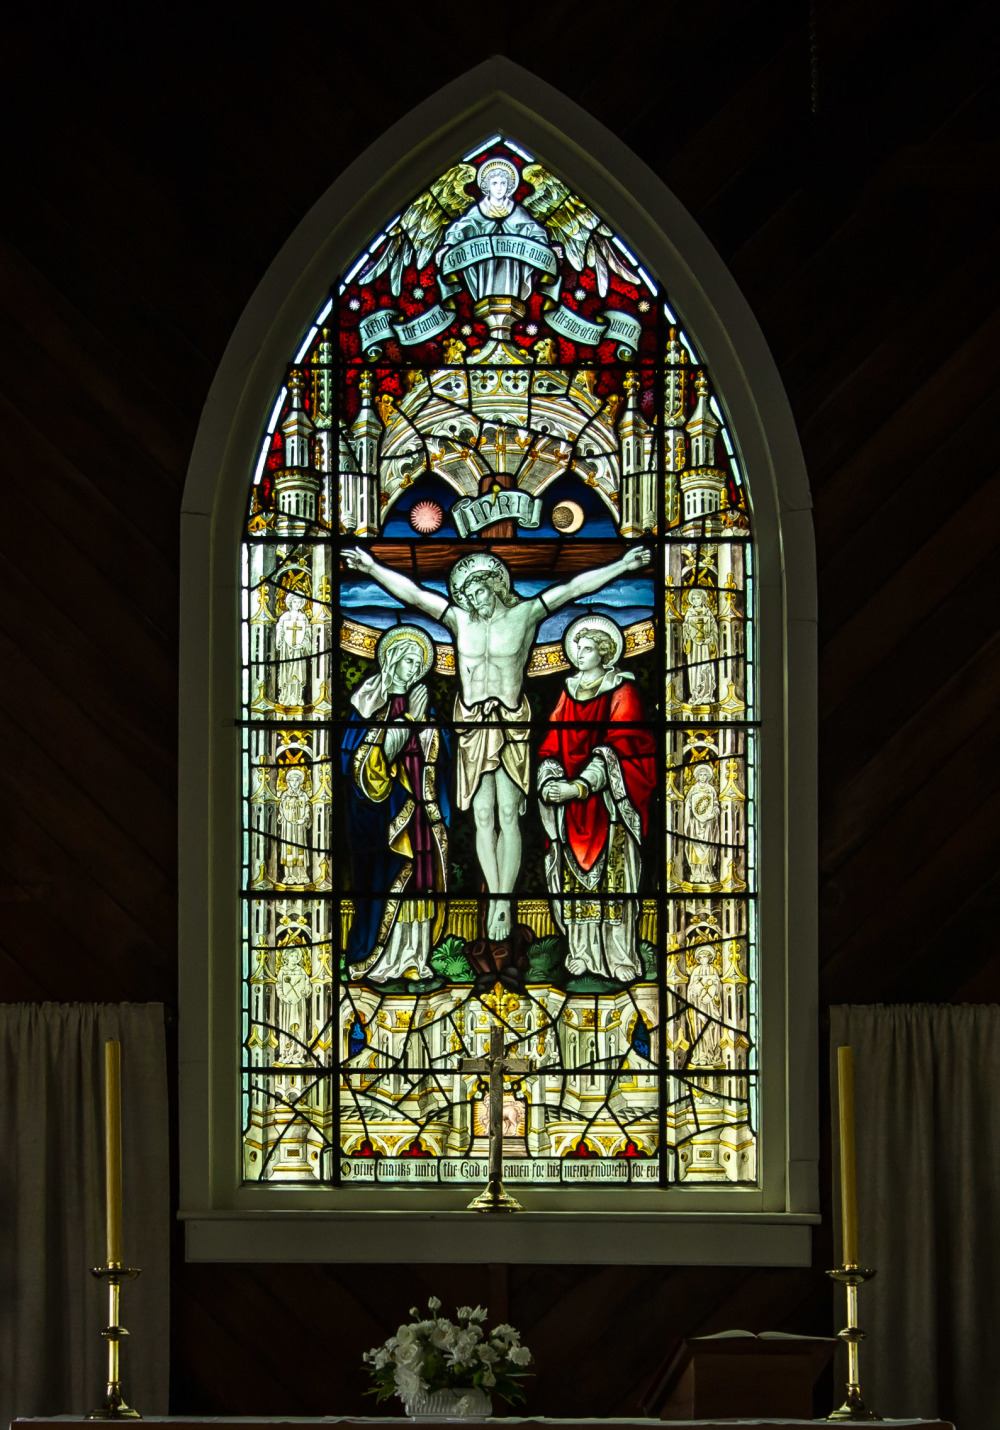 The Altar Window at Christ Church Warkworth